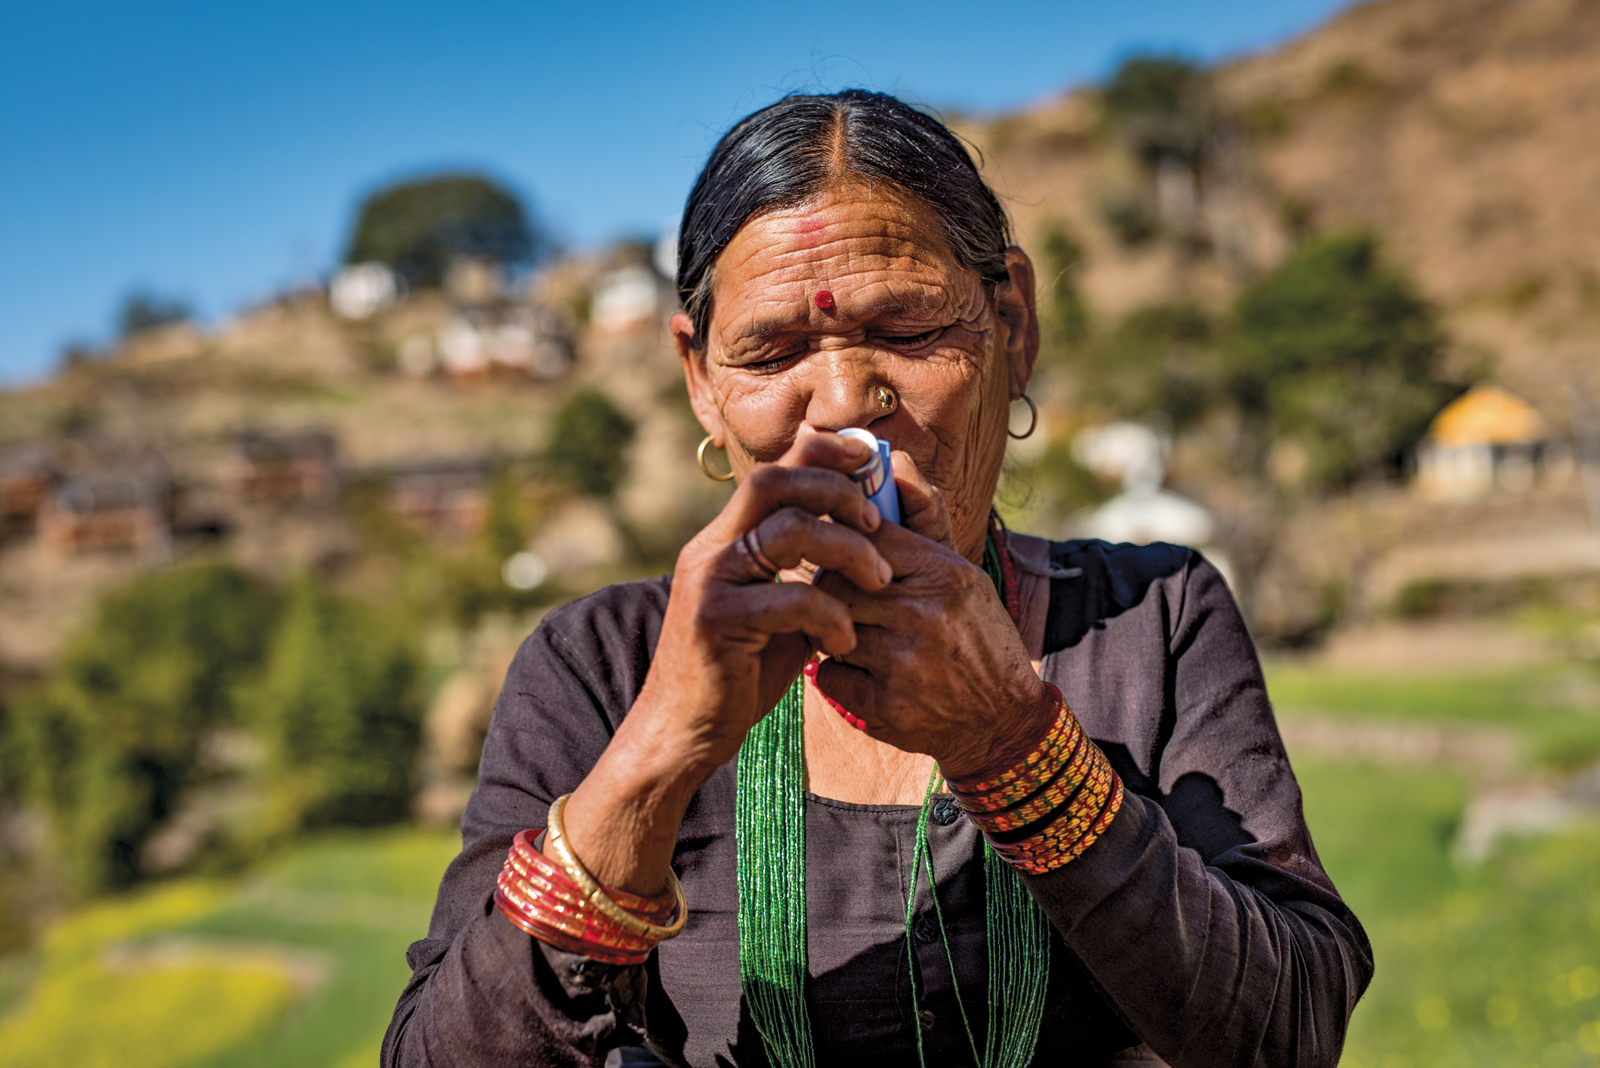 Older Nepalese woman uses an inhaler with both hands in the Nepal countryside. She wears a black greens, green beaded string necklace, mutiple bangles on each wrist, and gold hoop earrings. Learning to use an inhaler outside of Achham